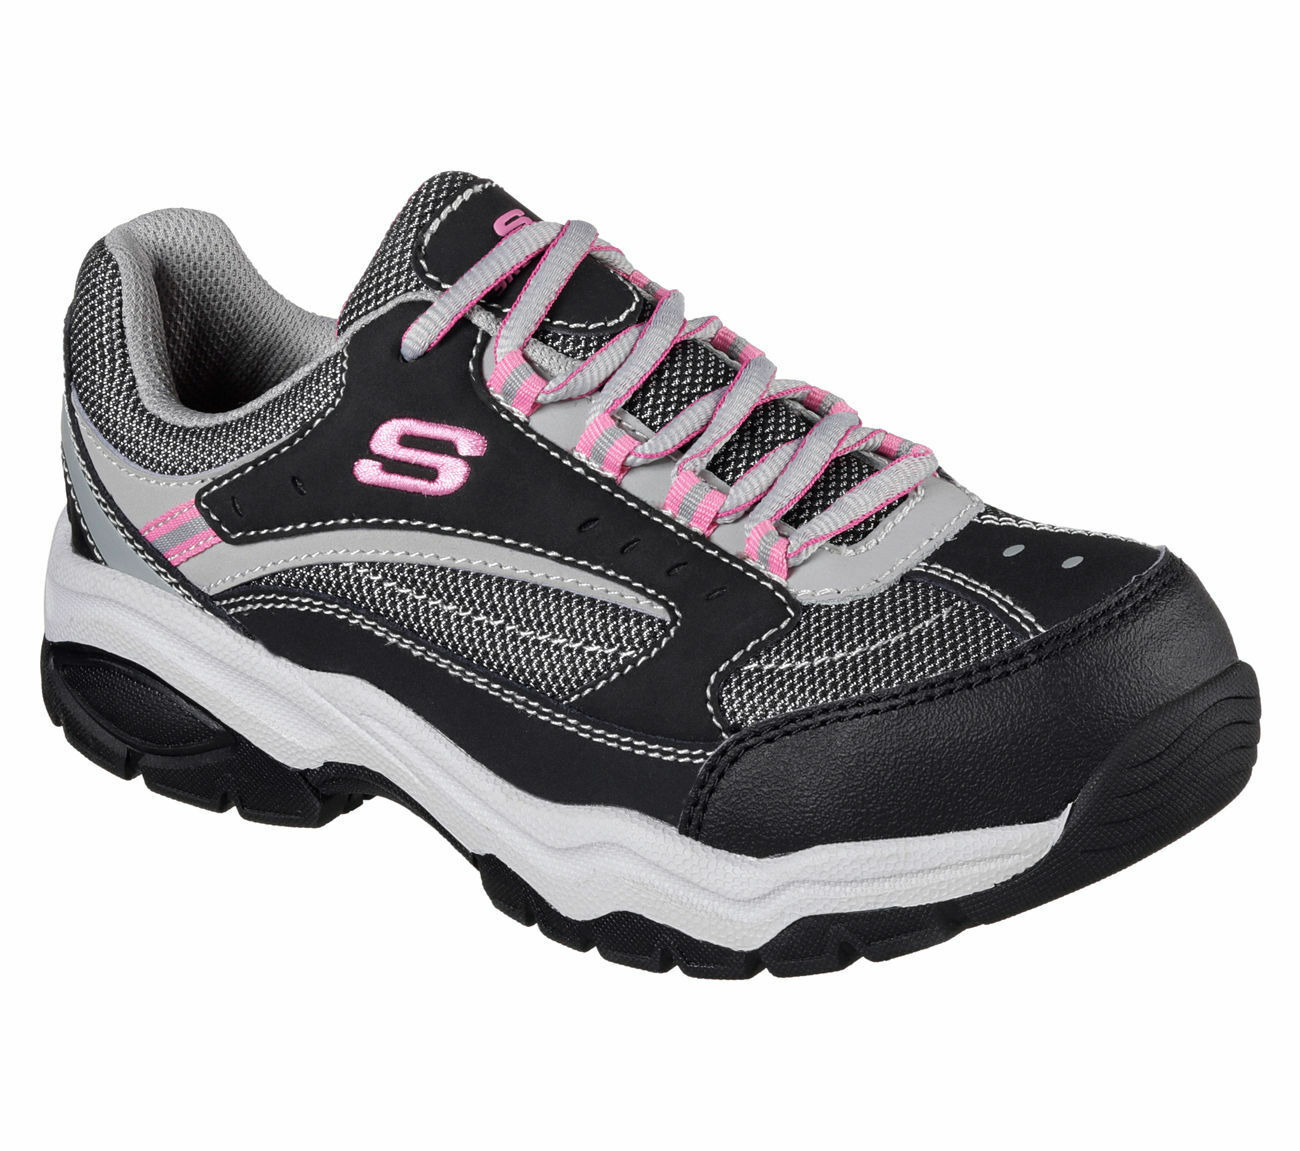 76601 Work BKGY Black Gray Skechers Shoes Womens Memory Steel Toe Slip Resistant